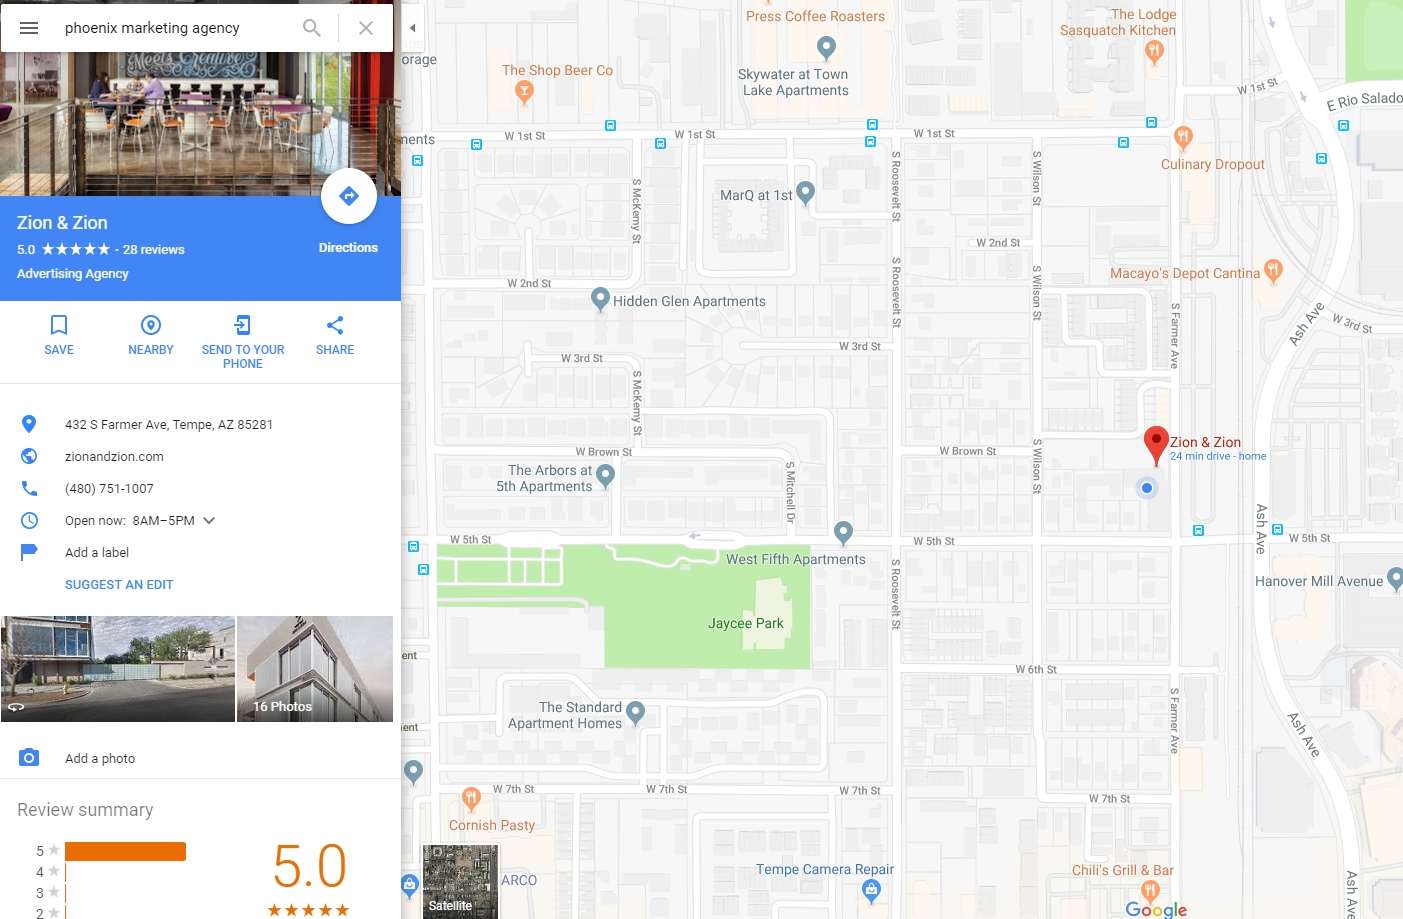 the local listings in google